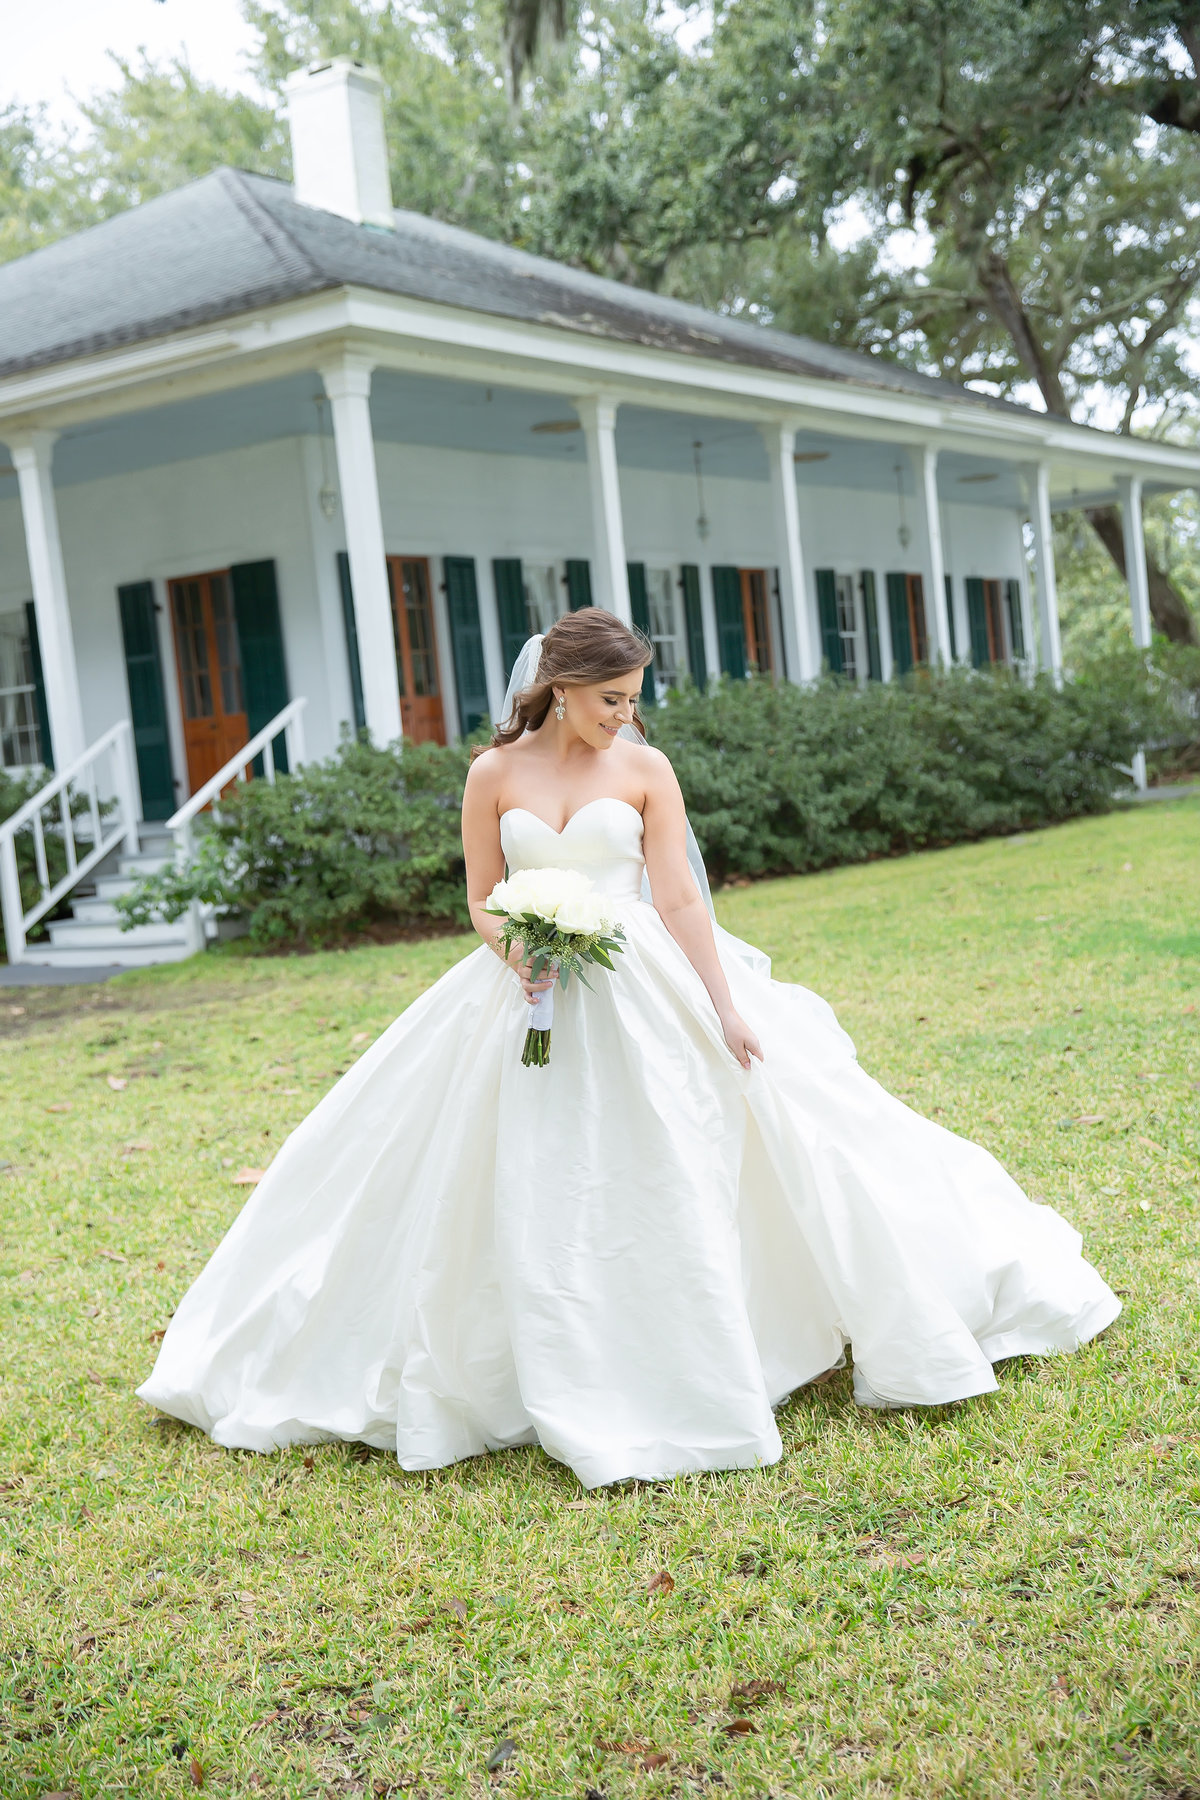 Bridal Portraits in Gautier at the Old Place